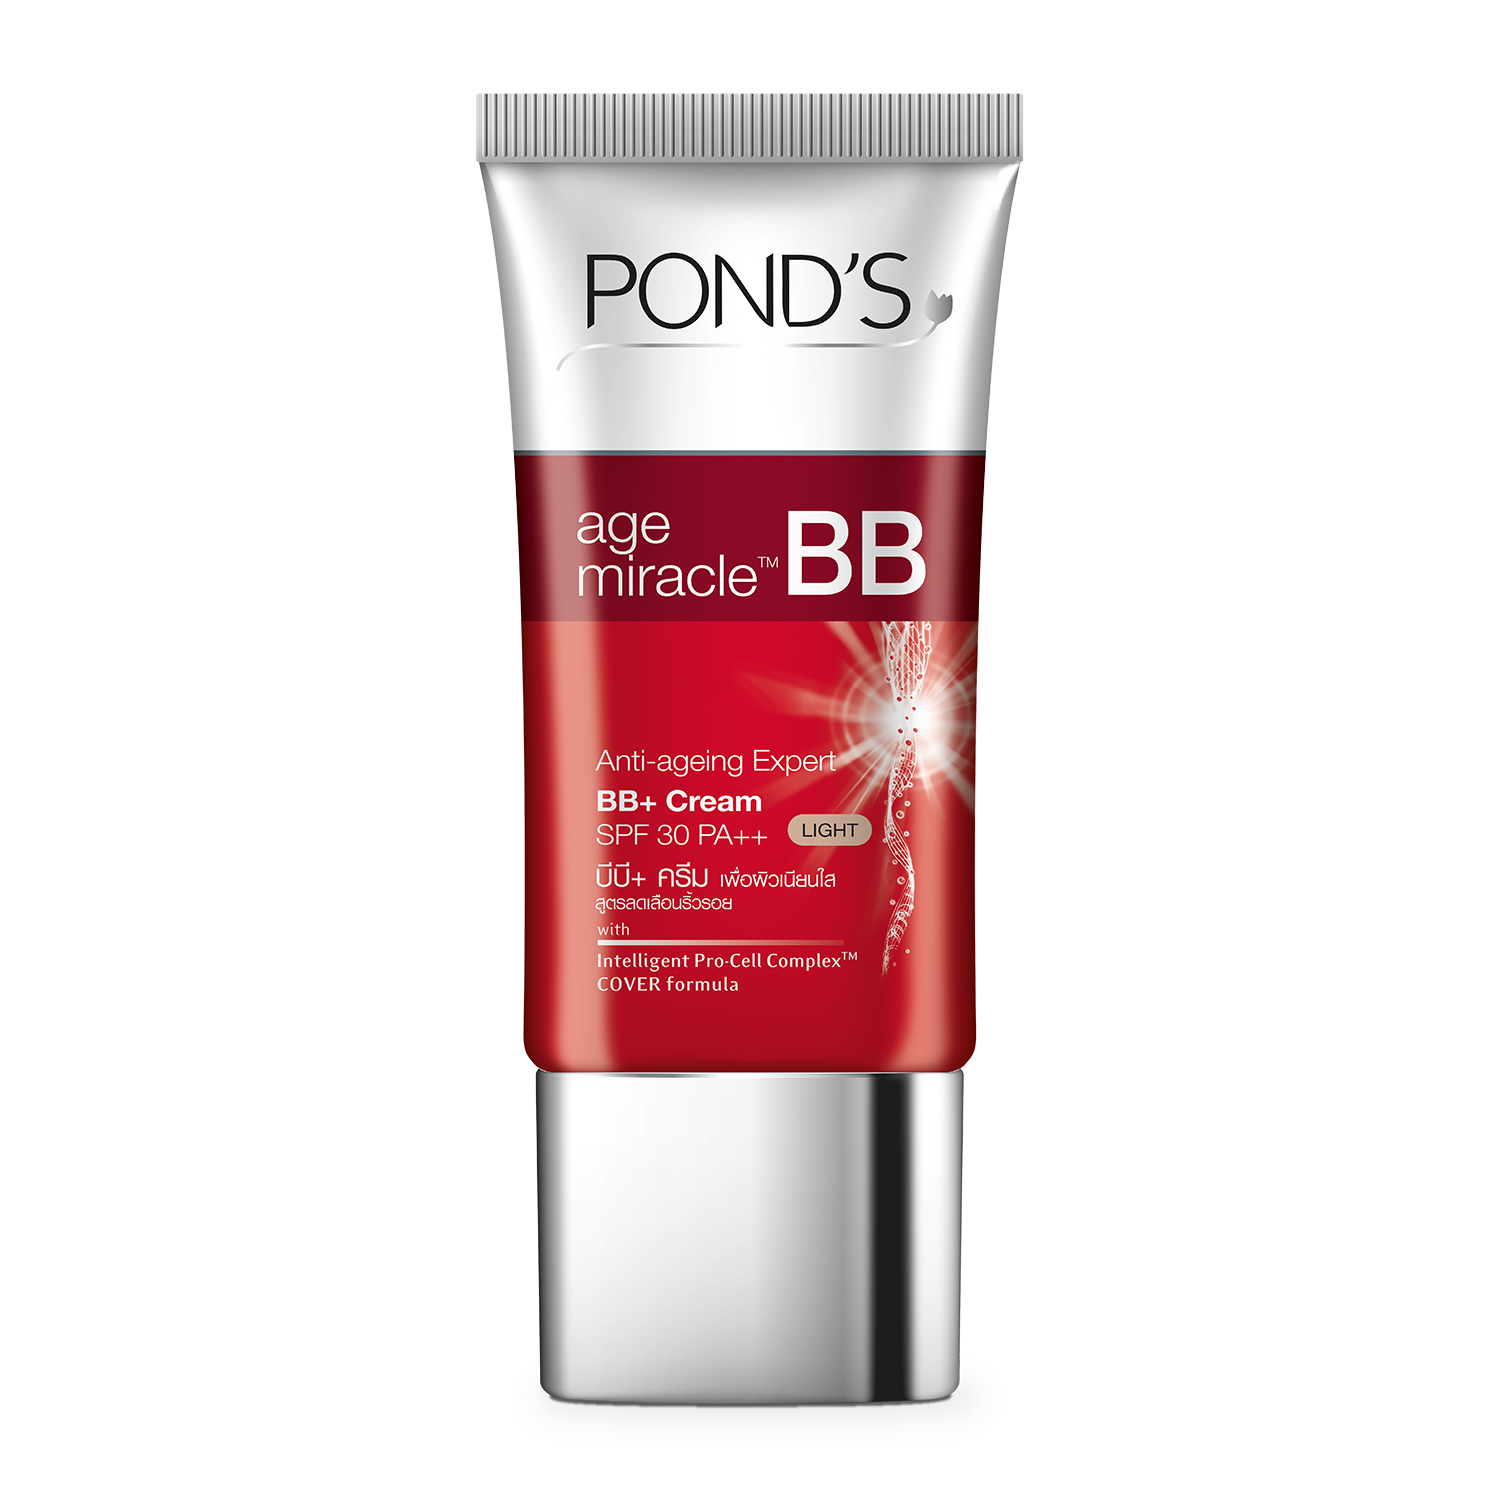 Ponds Age Miracle BB Cream Light 25g by Pond's